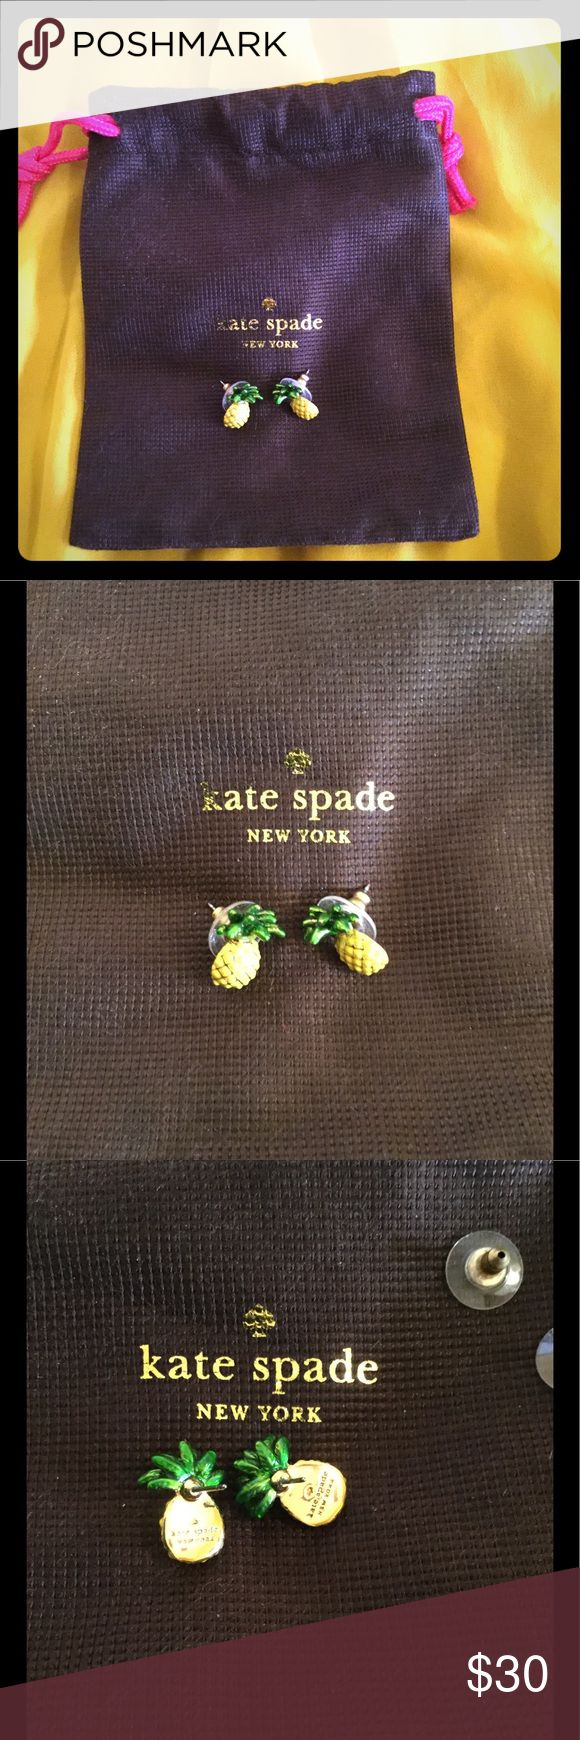 """KATE SPADE PINEAPPLE STUDS EARRINGS- NWOT NWOT and pouch.  Never used.  drop length: 0.75"""".  Width:  0.5"""".  Shiny 12-karat gold-filled posts.  Currently on katespade.com for $33. kate spade Jewelry Earrings"""